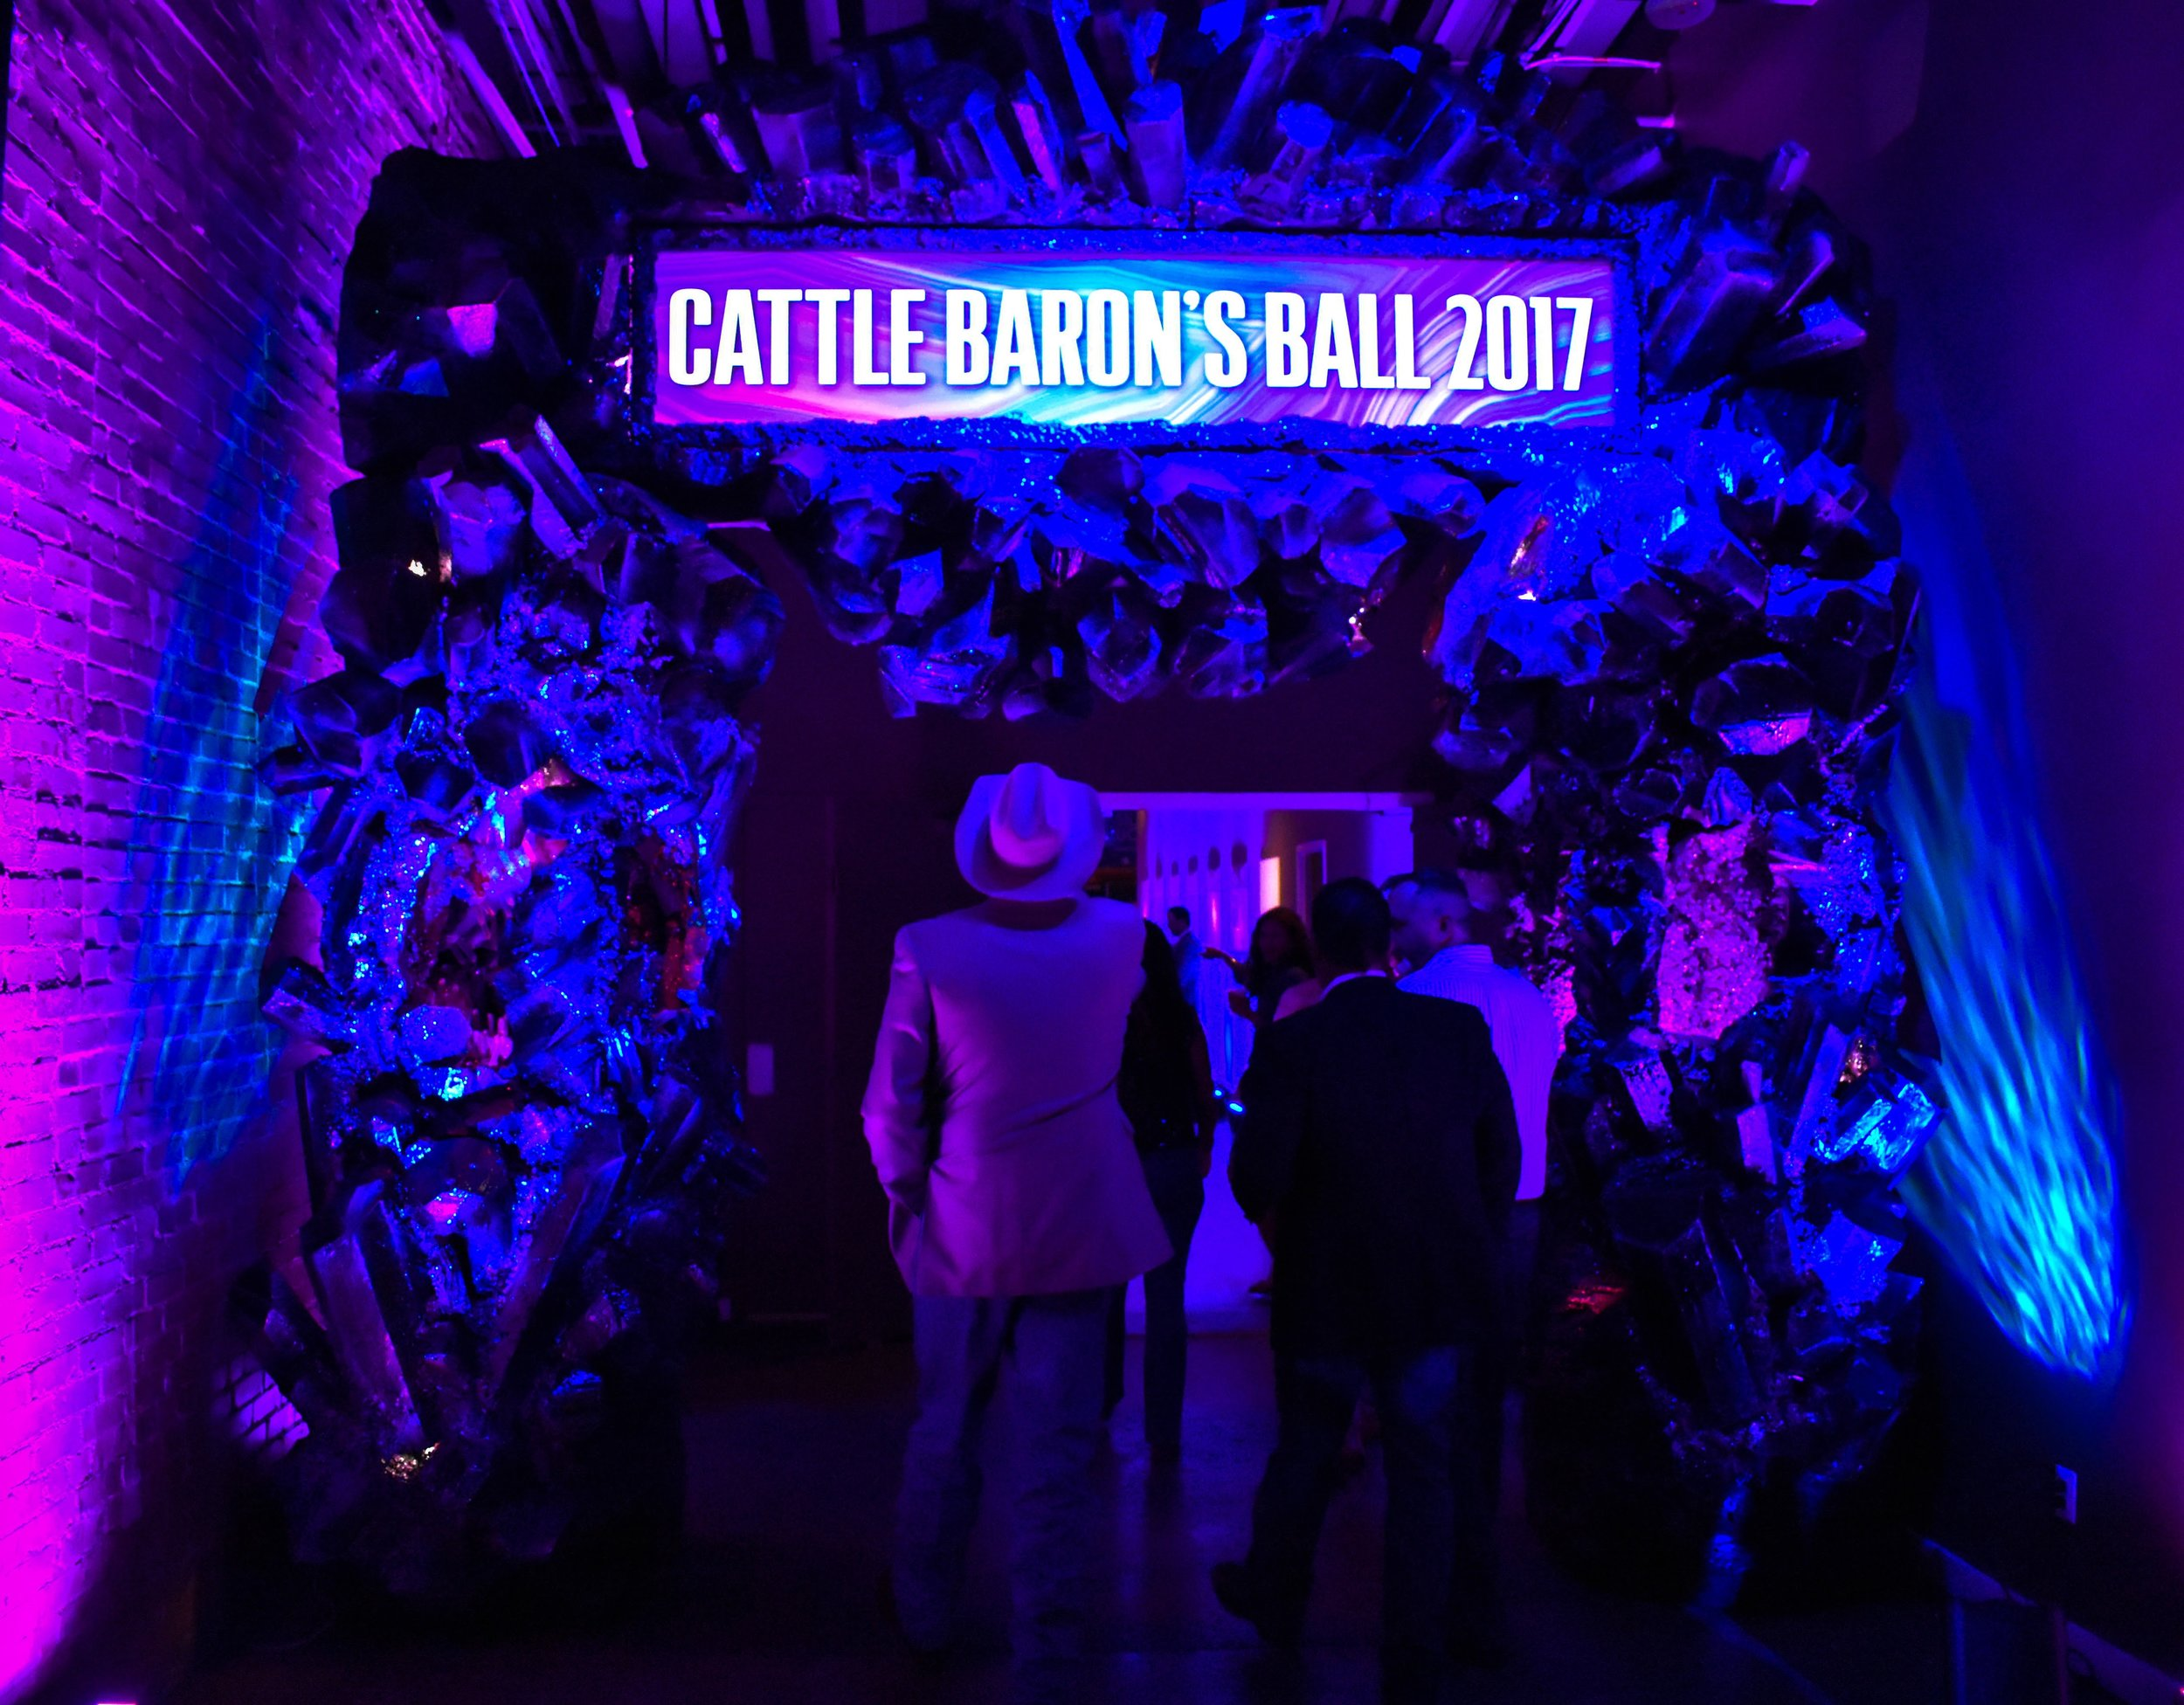 Make Your Life Sweeter Events - Cattle Barons Ball 2017